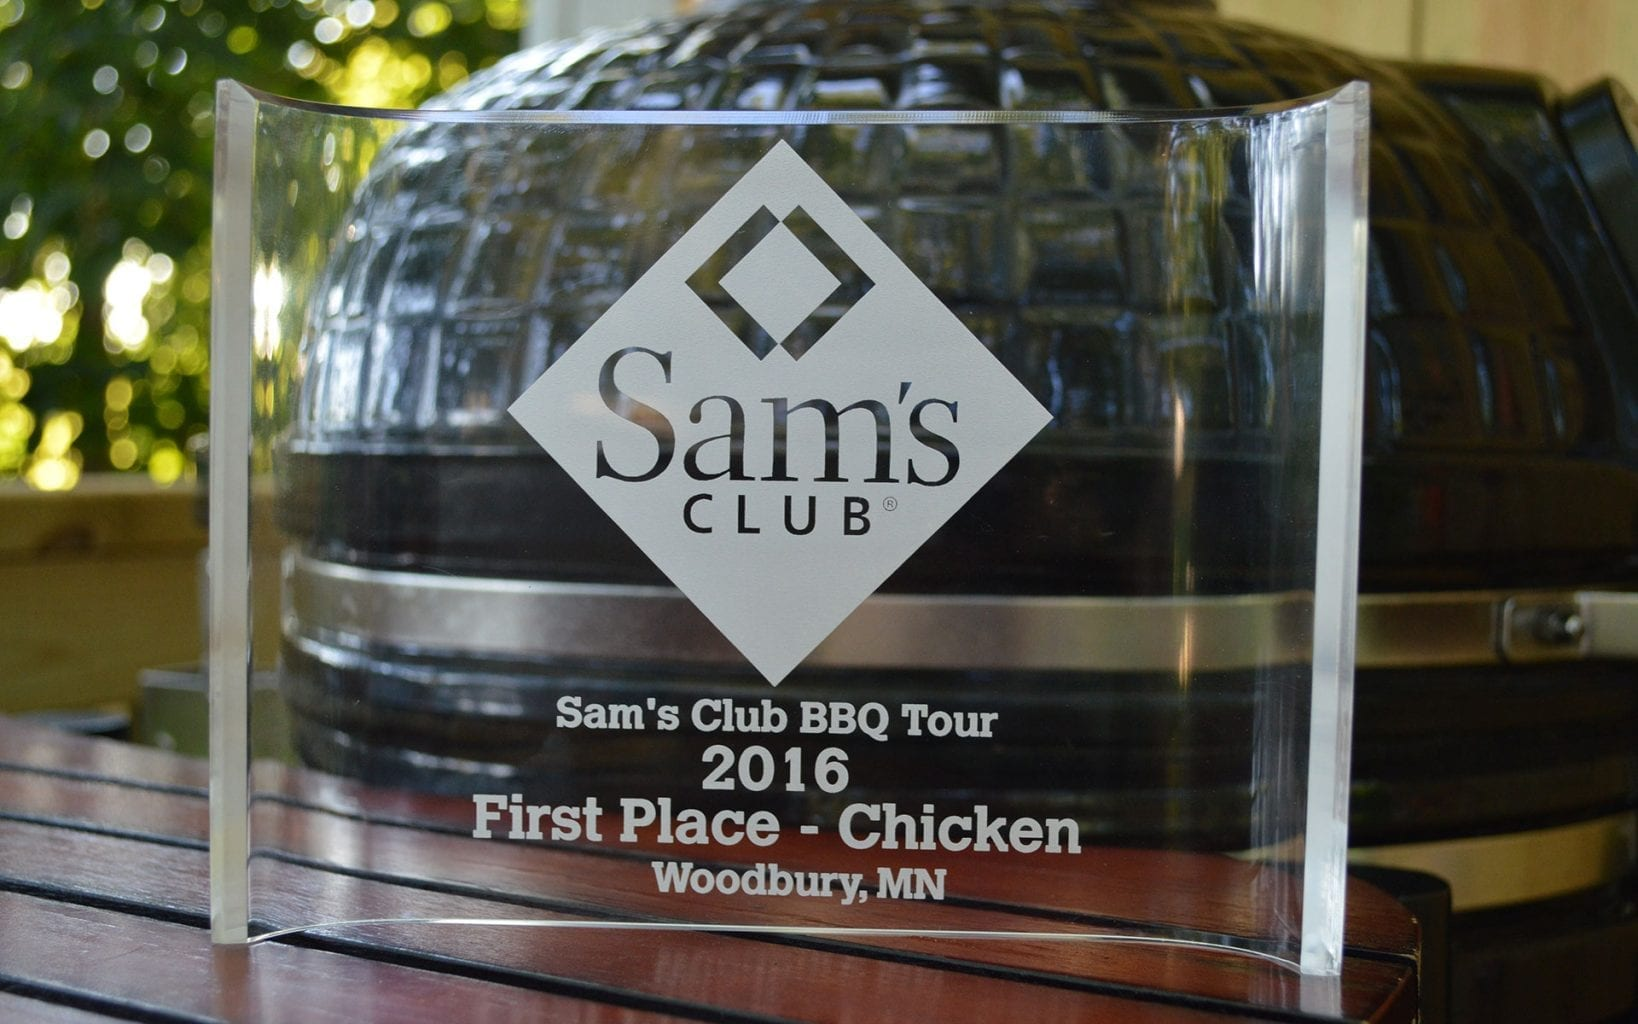 1st place - Chicken - trophy